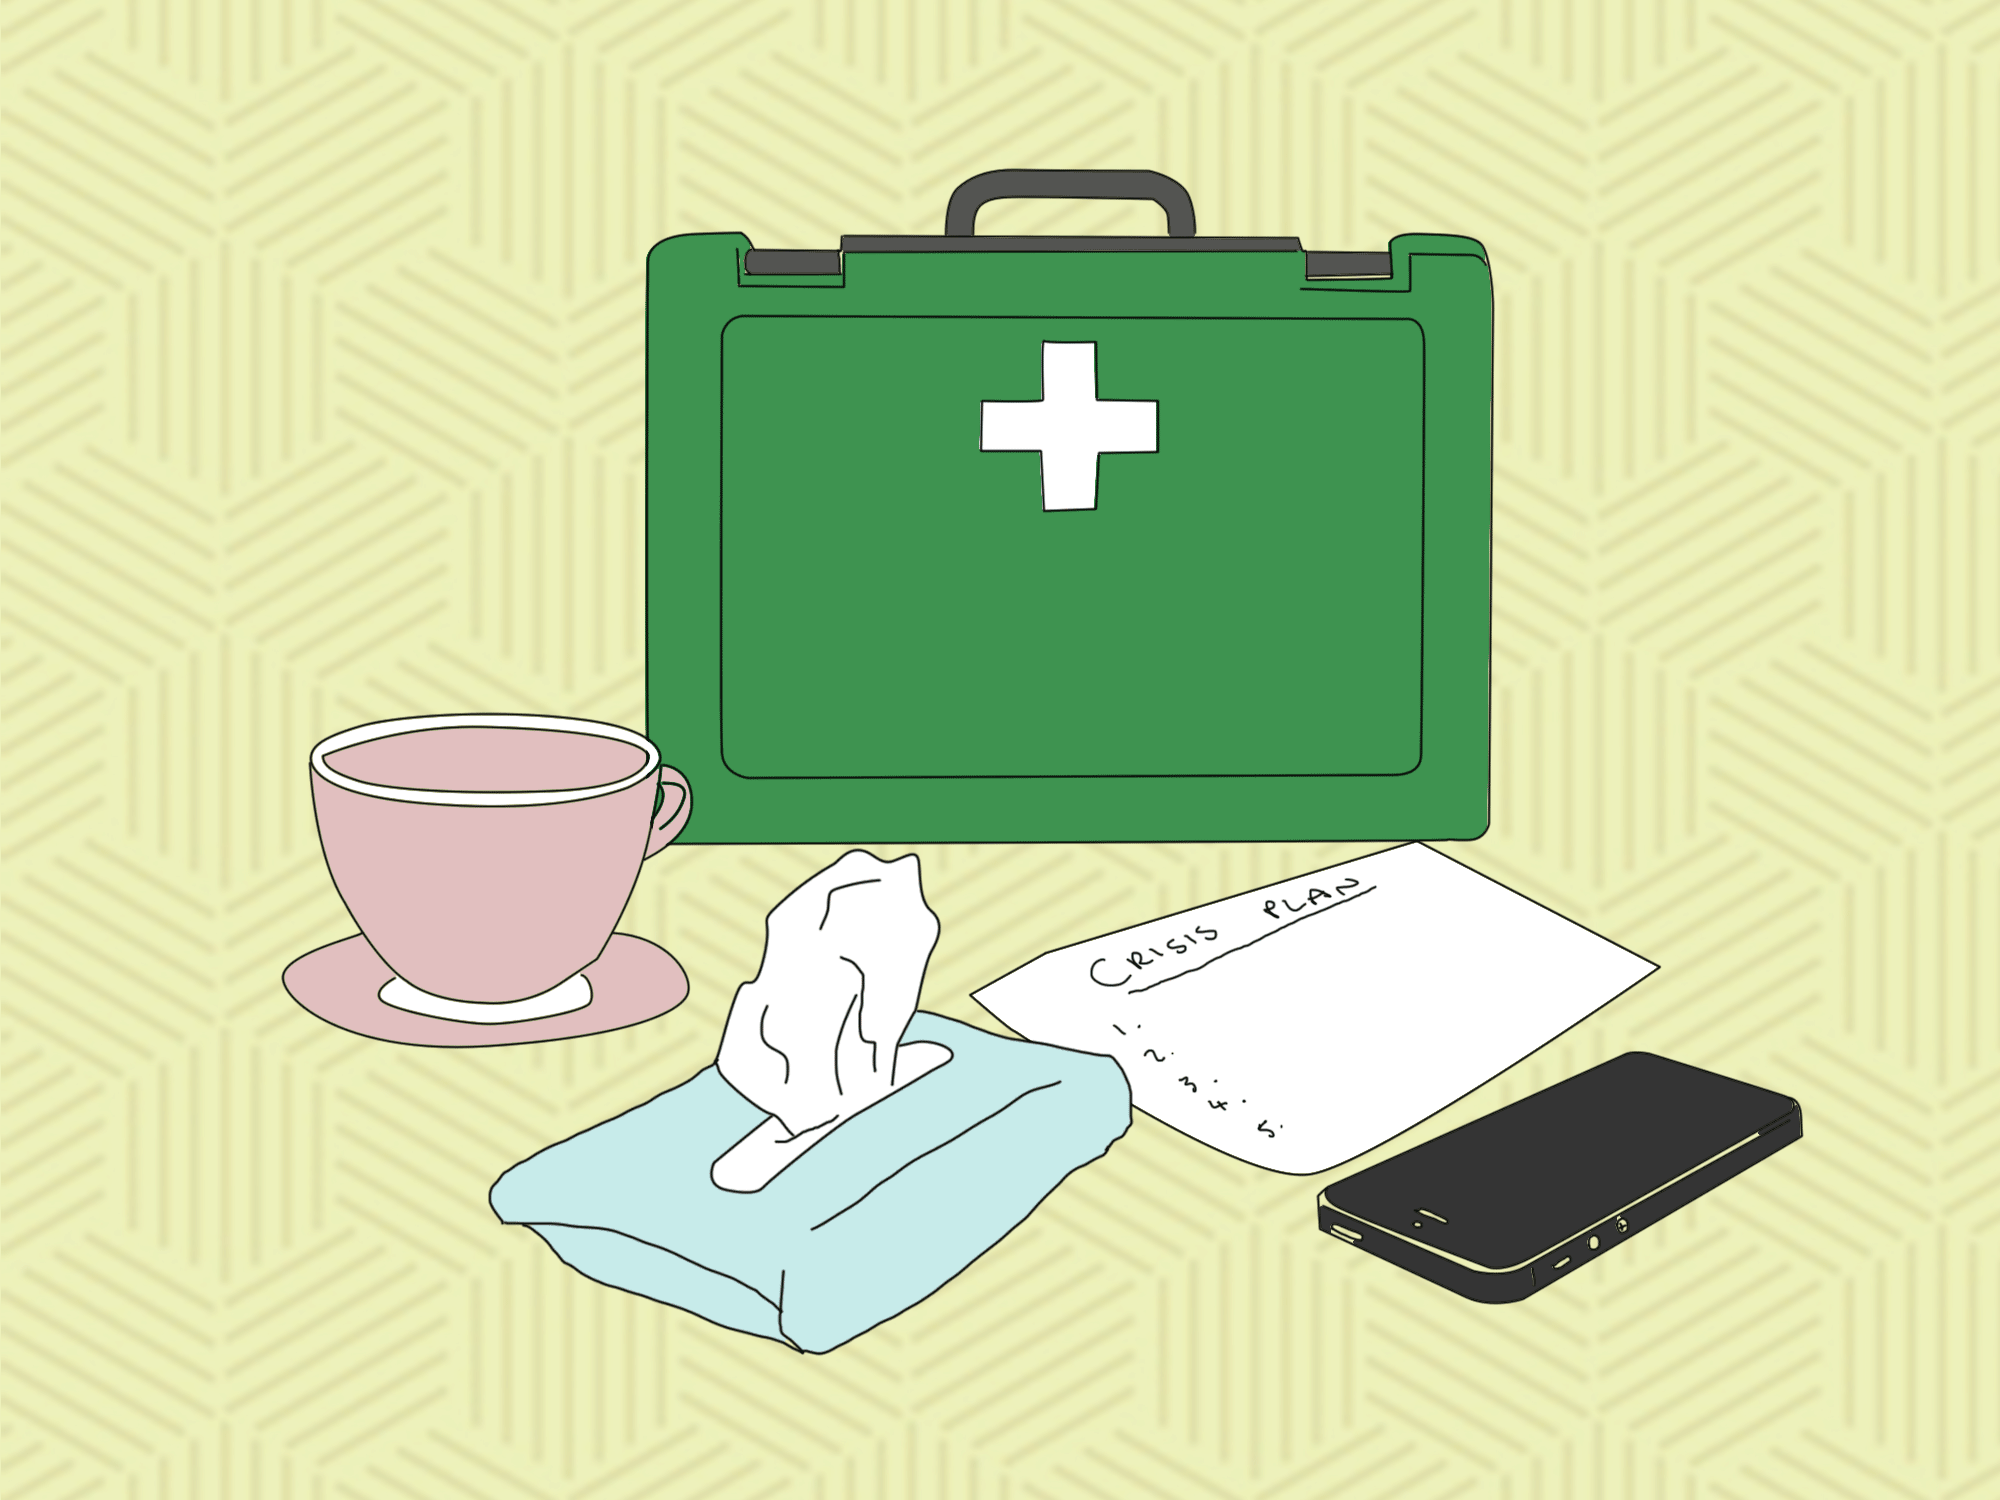 Sometimes all you need in a mental health first aid kit is tissues and some kindness